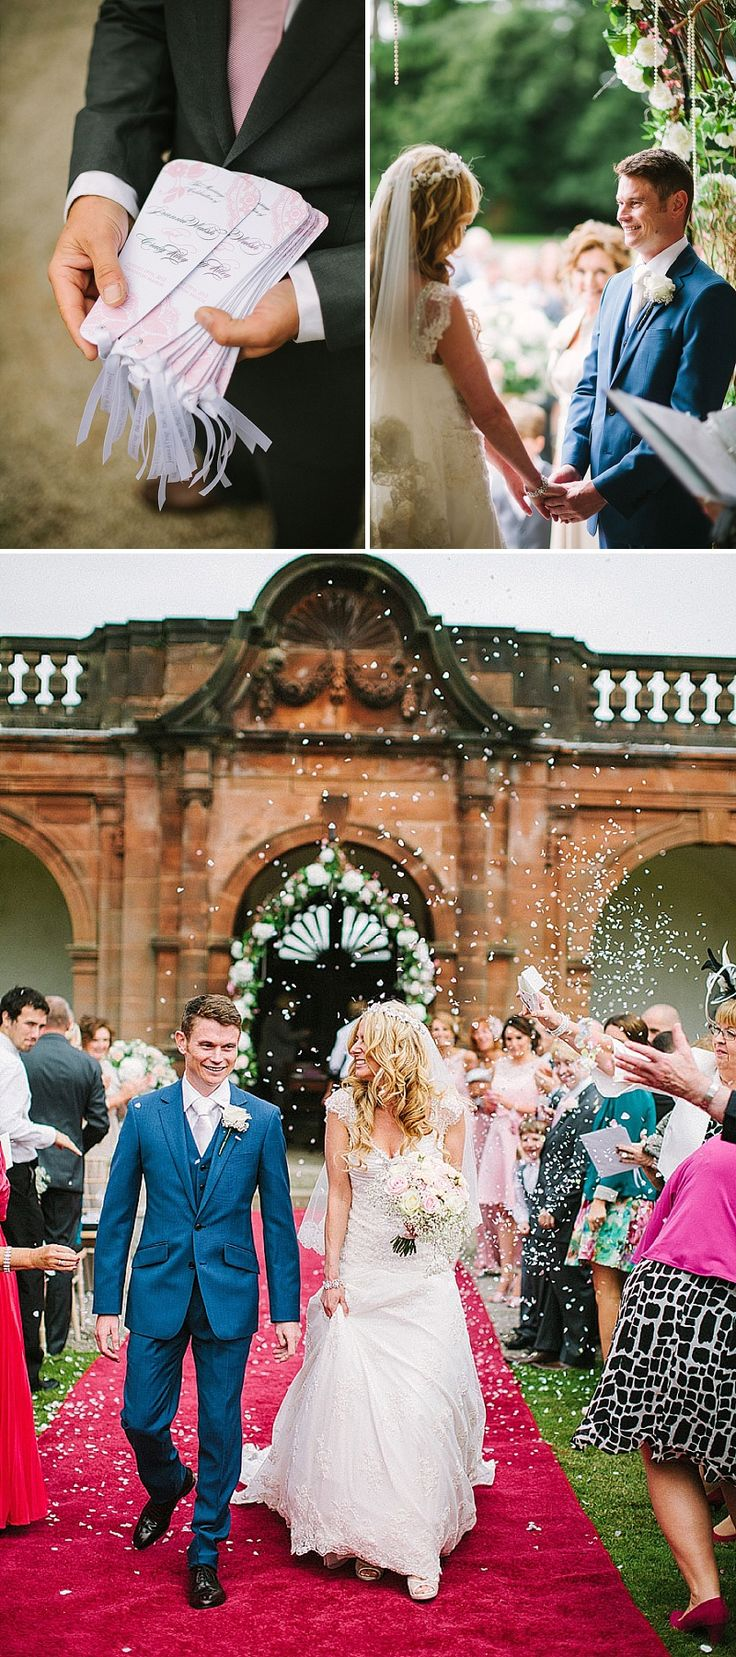 Elegant Wedding At Thornton Manor With Bride In A Bespoke Lace Gown And Jimmy Choo Heels With A Vintage Lace Veil And Bridesmaids In Baby Pink With Groom In Electric Blue Suit From Reiss 7